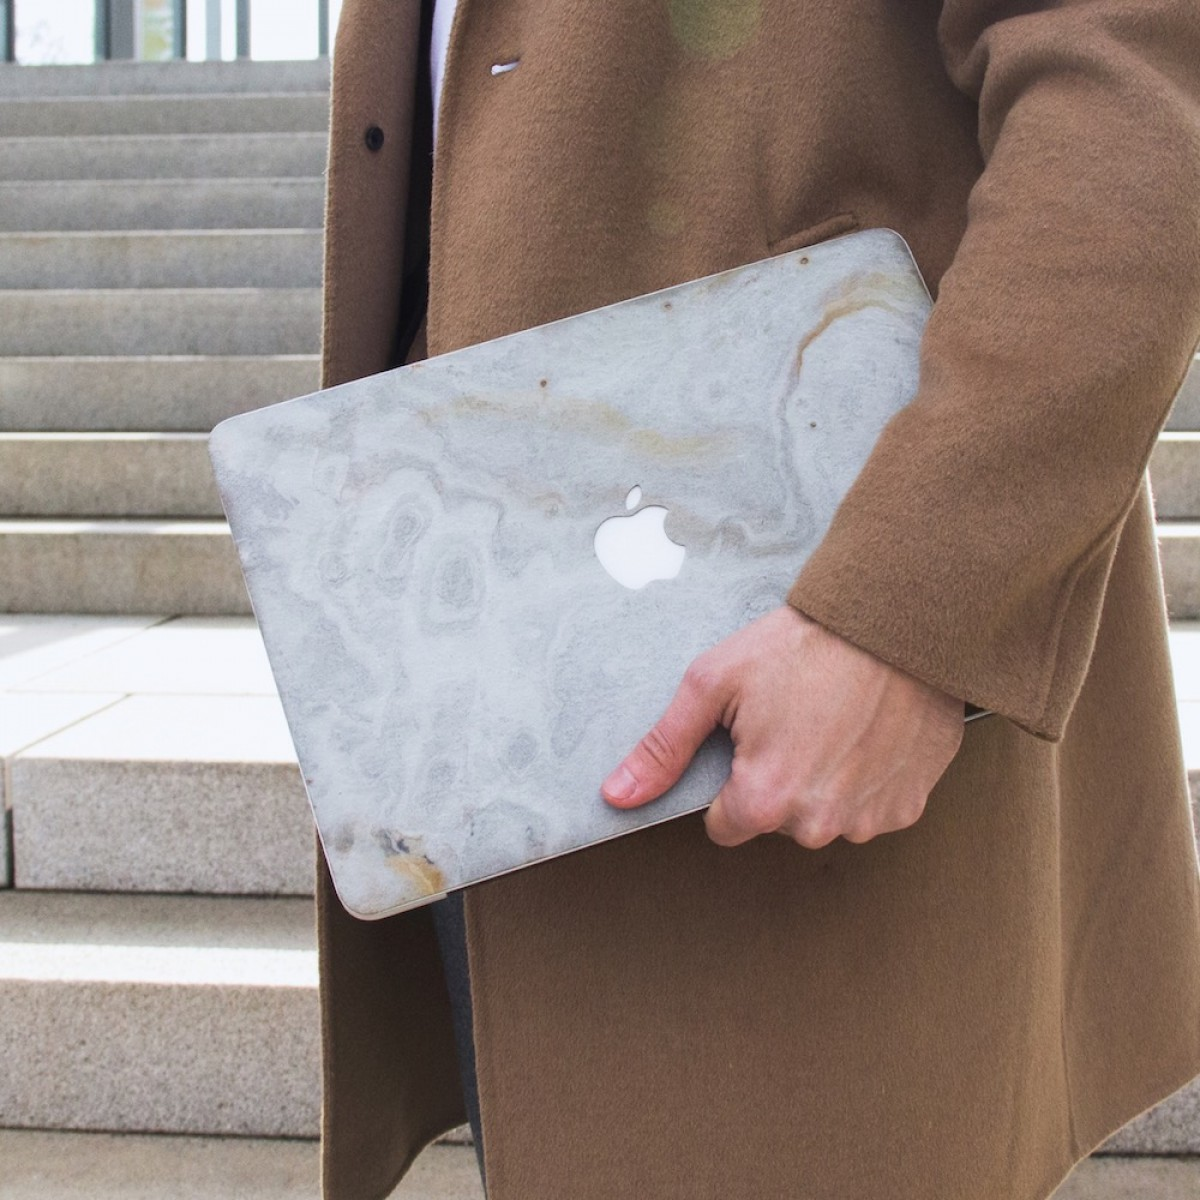 "Woodcessories - EcoSkin Stone - Design Apple Macbook Cover, Skin, Schutz für das Macbook aus hochwertigem Stein (Macbook 13"" Air & Pro (until 2016), Volcano Schwarz, Camo Grau, Antik Weiß, Canyon Rot)"